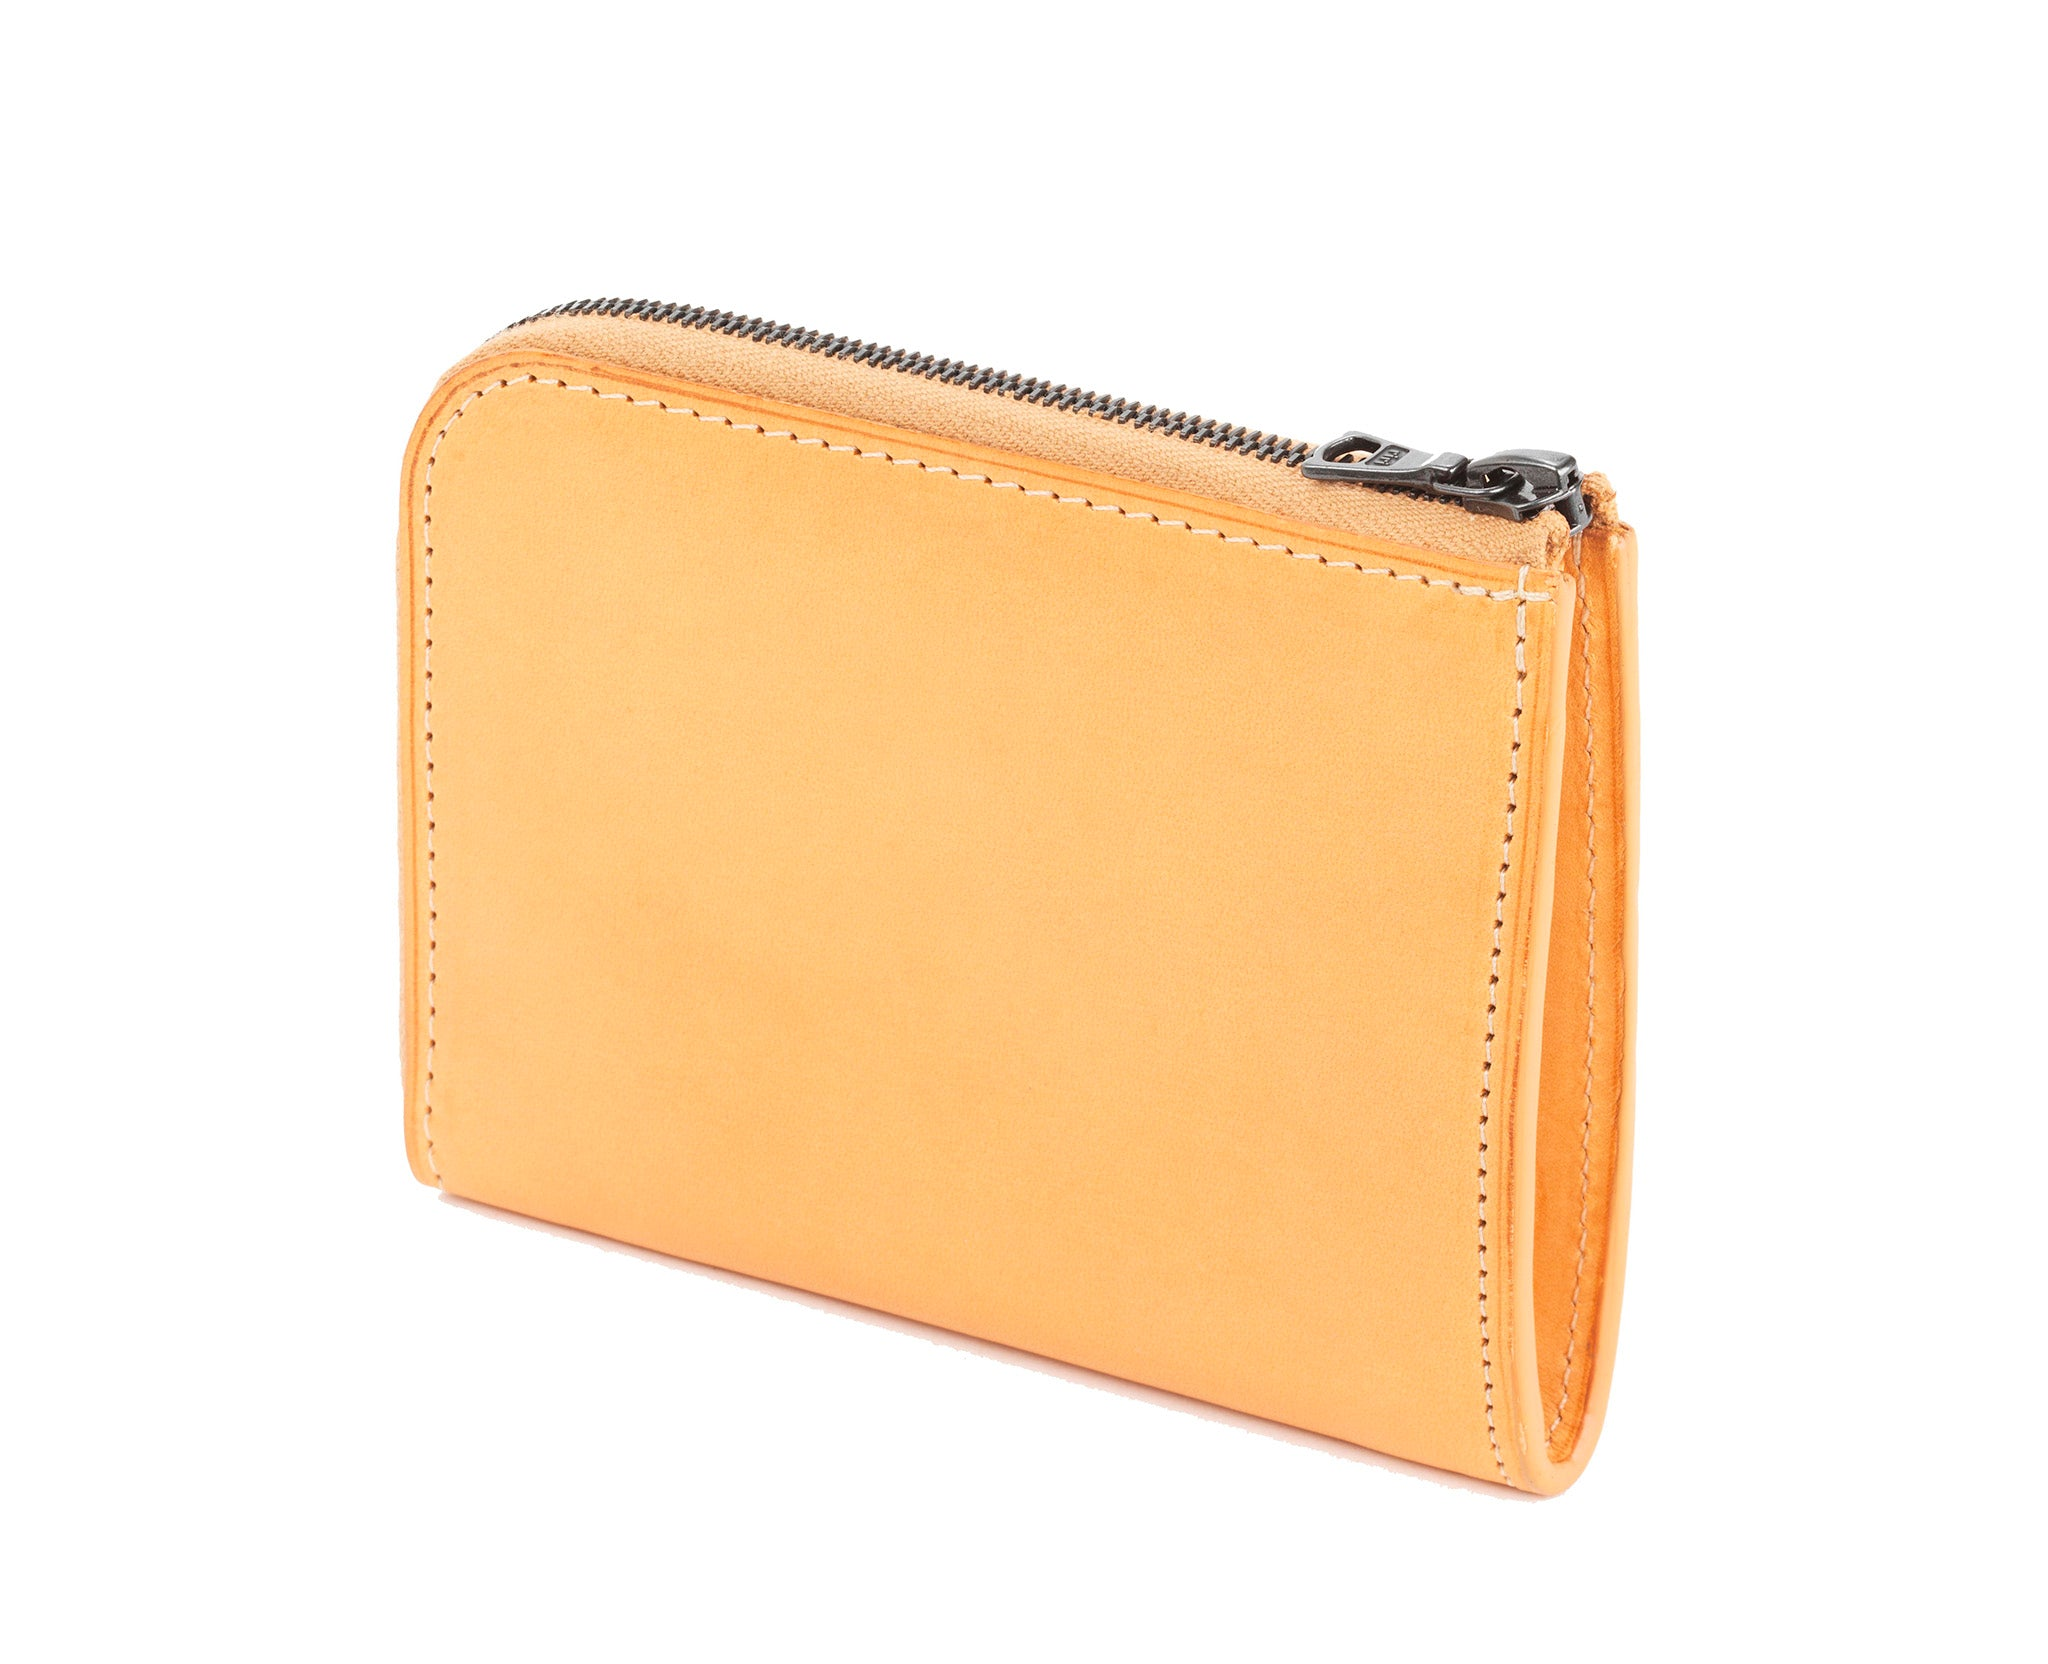 Zipped Wallet Natural